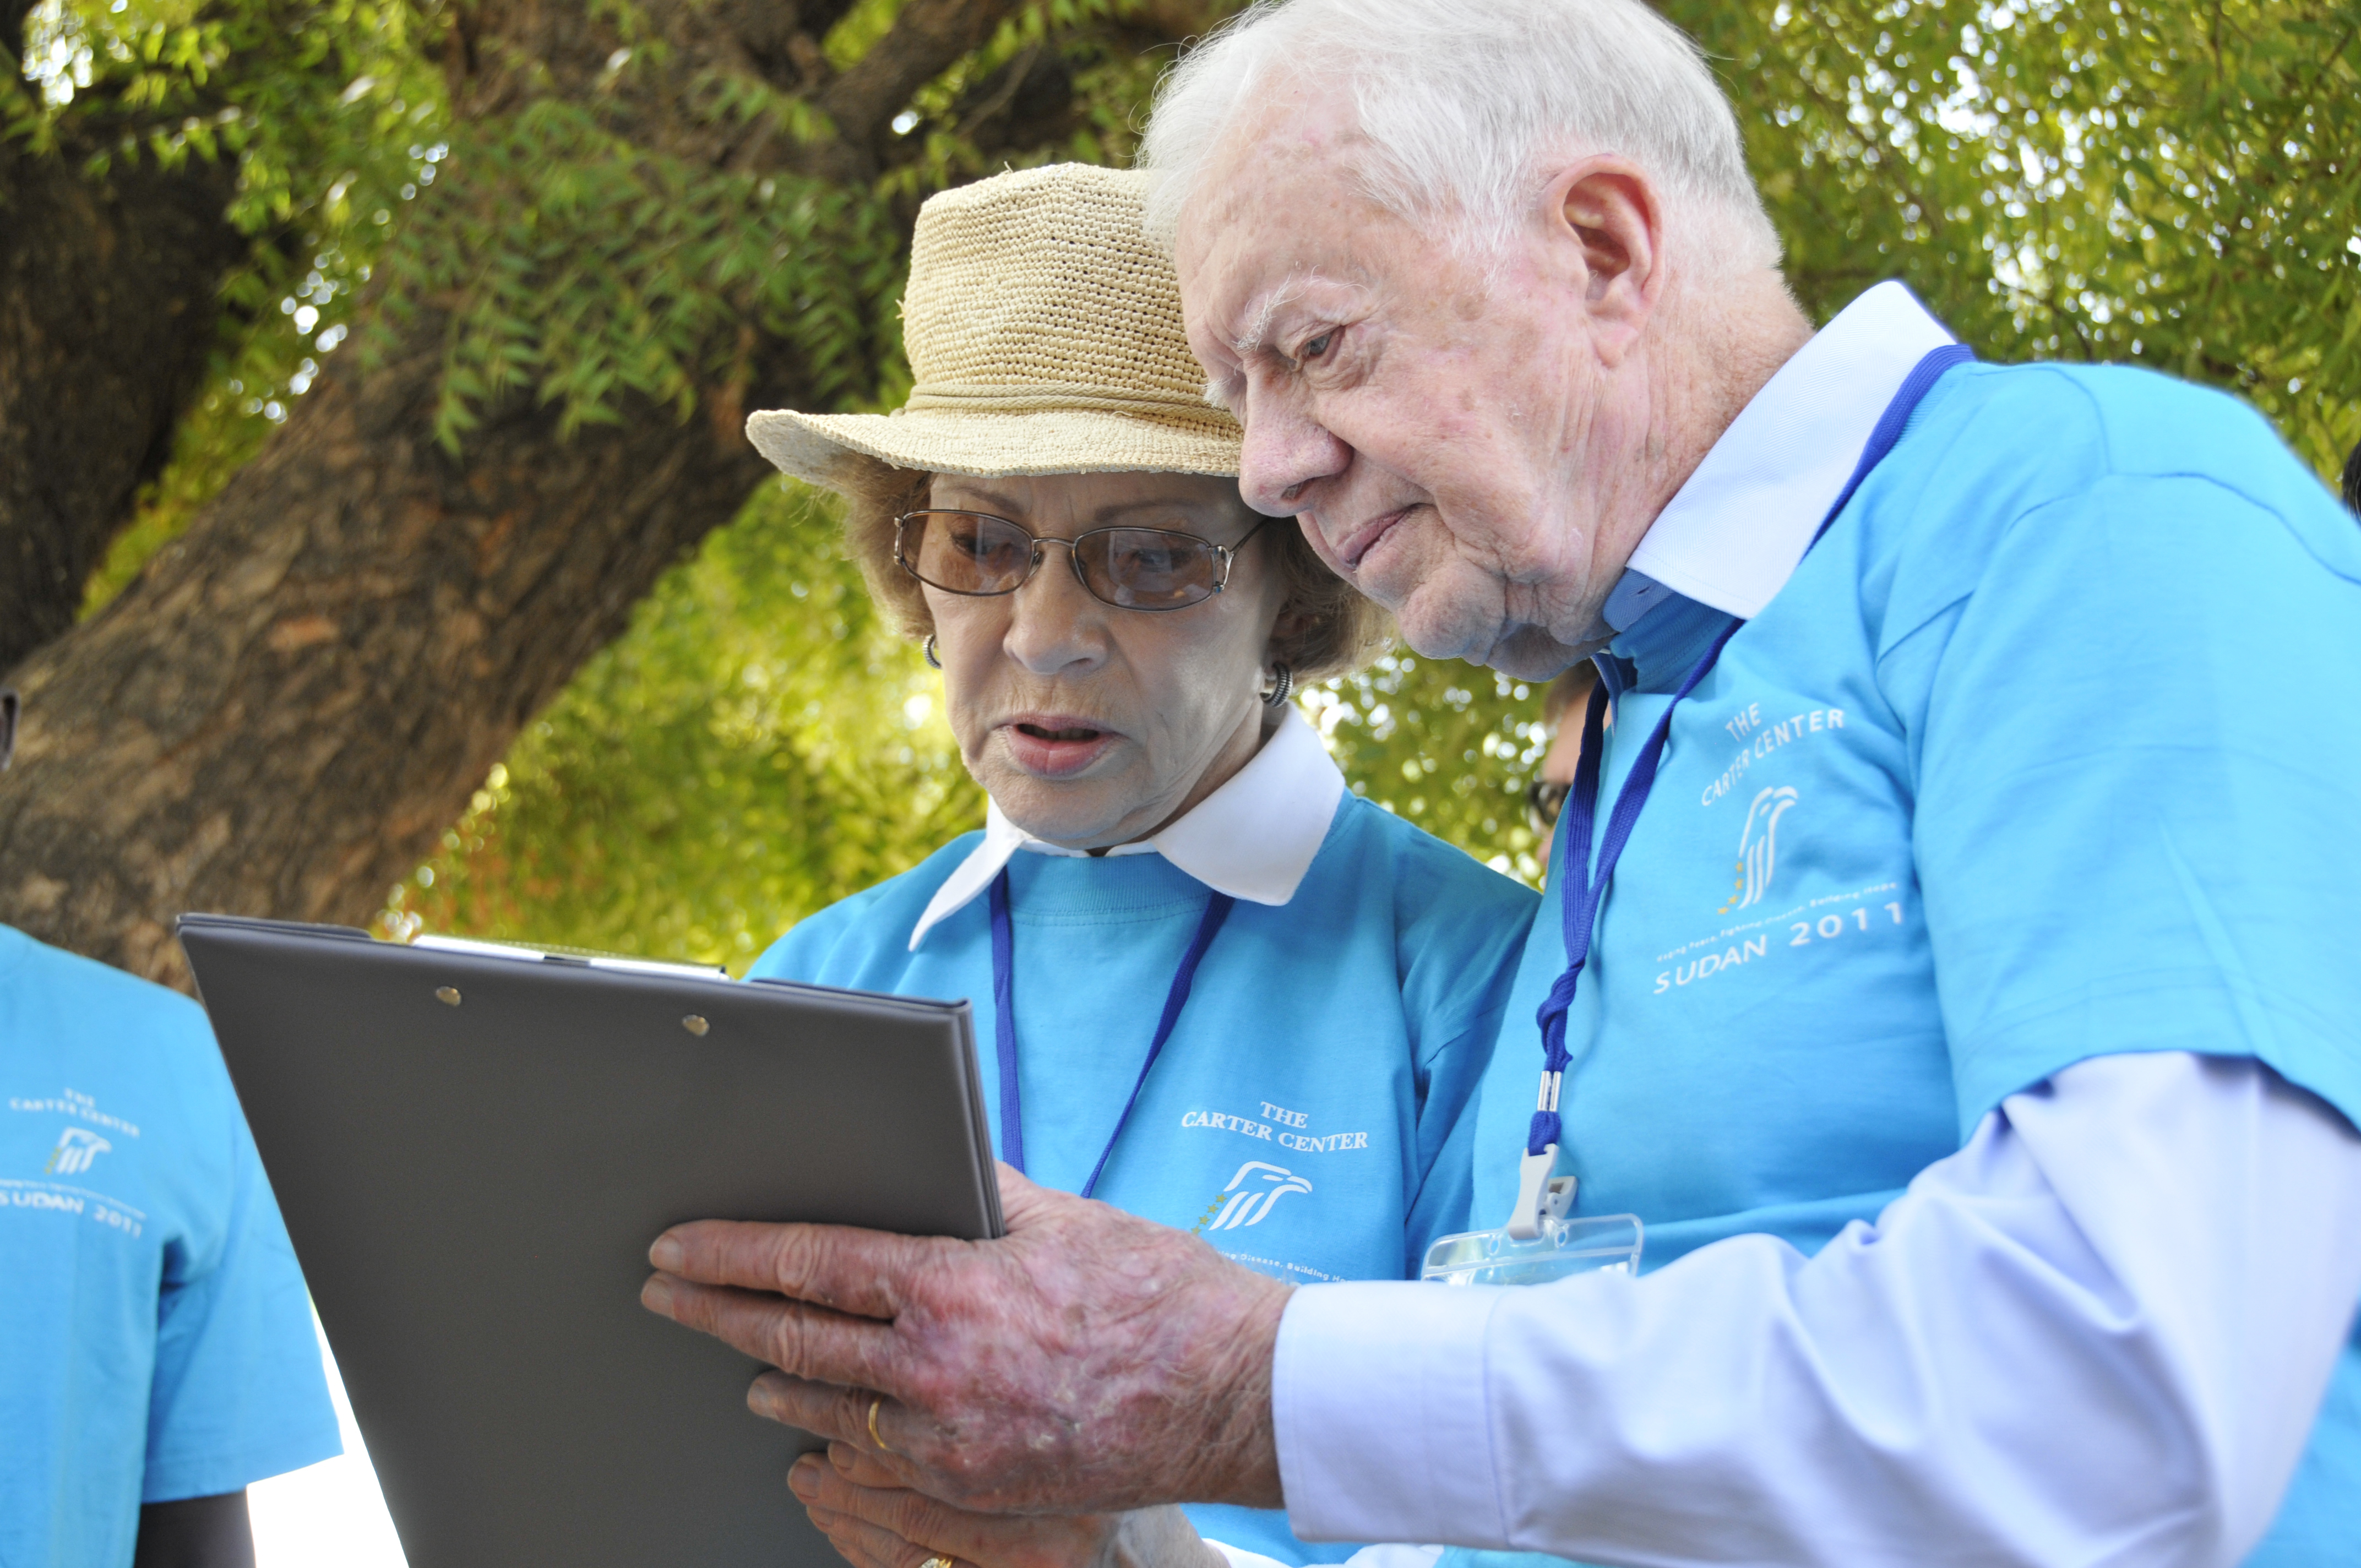 A white woman (Rosalynn Carter) in a white collared shirt with a blue t-shirt over it and a tan rimmed hat looks at a clipboard held by a white man (Jimmy Carter) in a white collared shirt with a blue t-shirt over it.